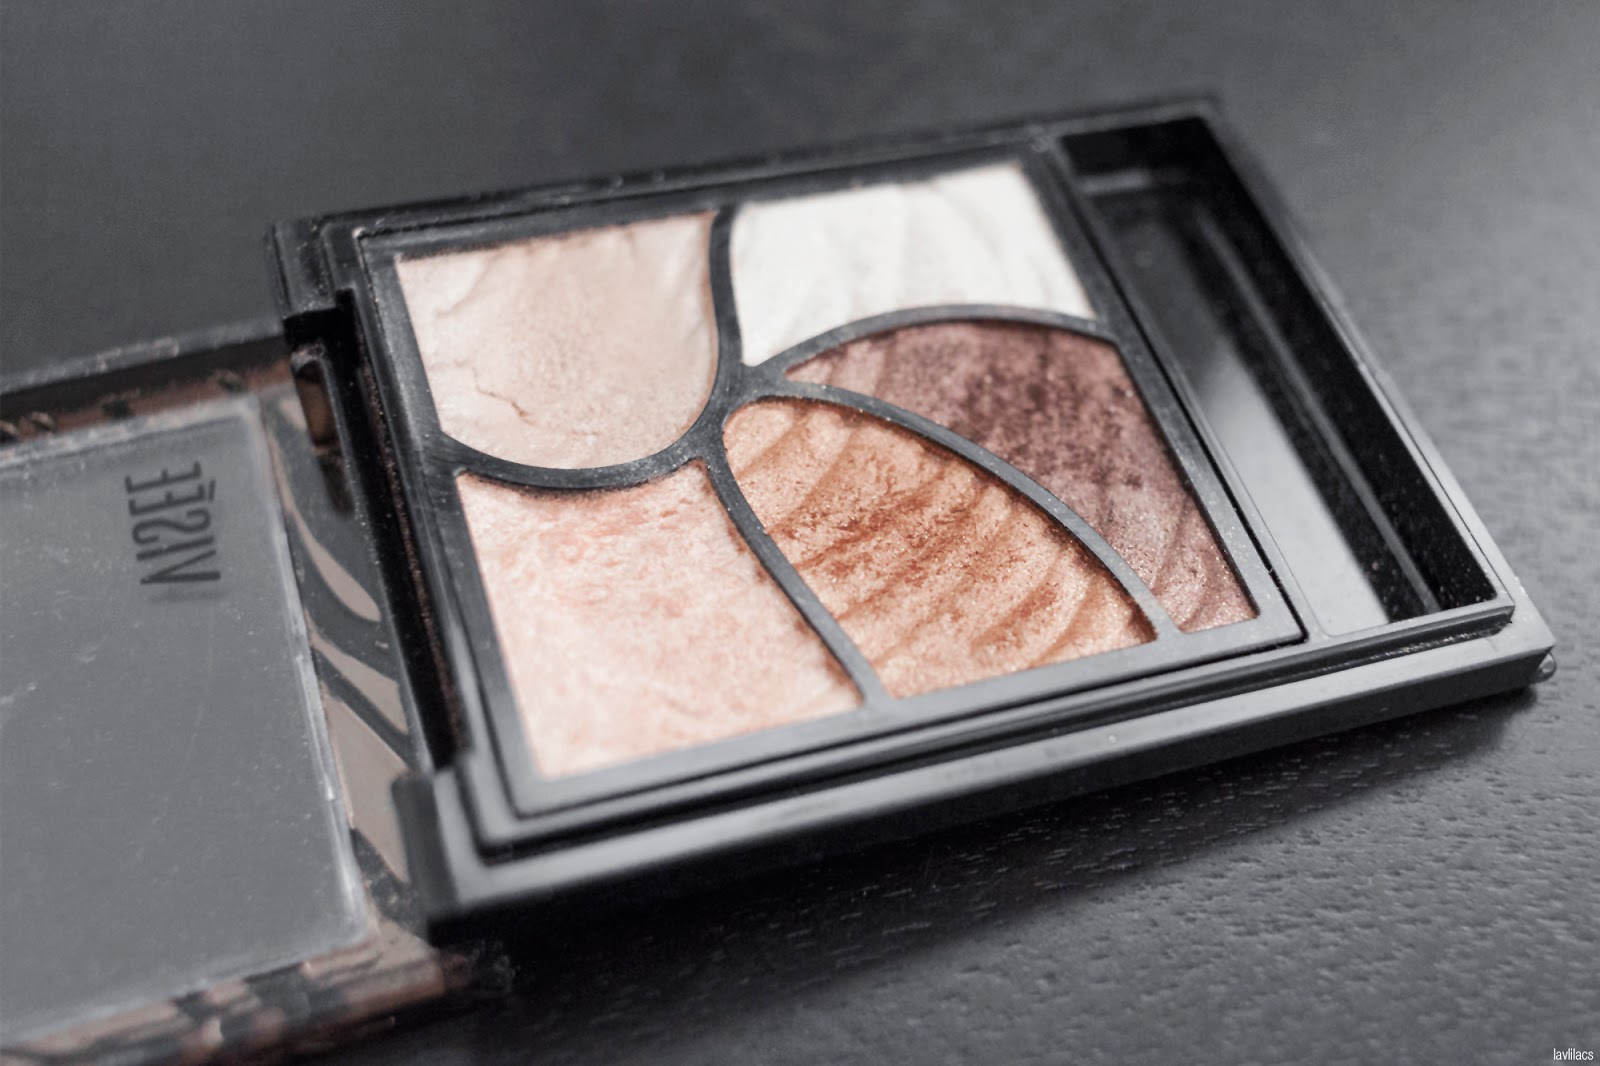 Project Make A Dent 2016 Kose Visee Glam Nude Eyeshadow Palette N-1 - End results